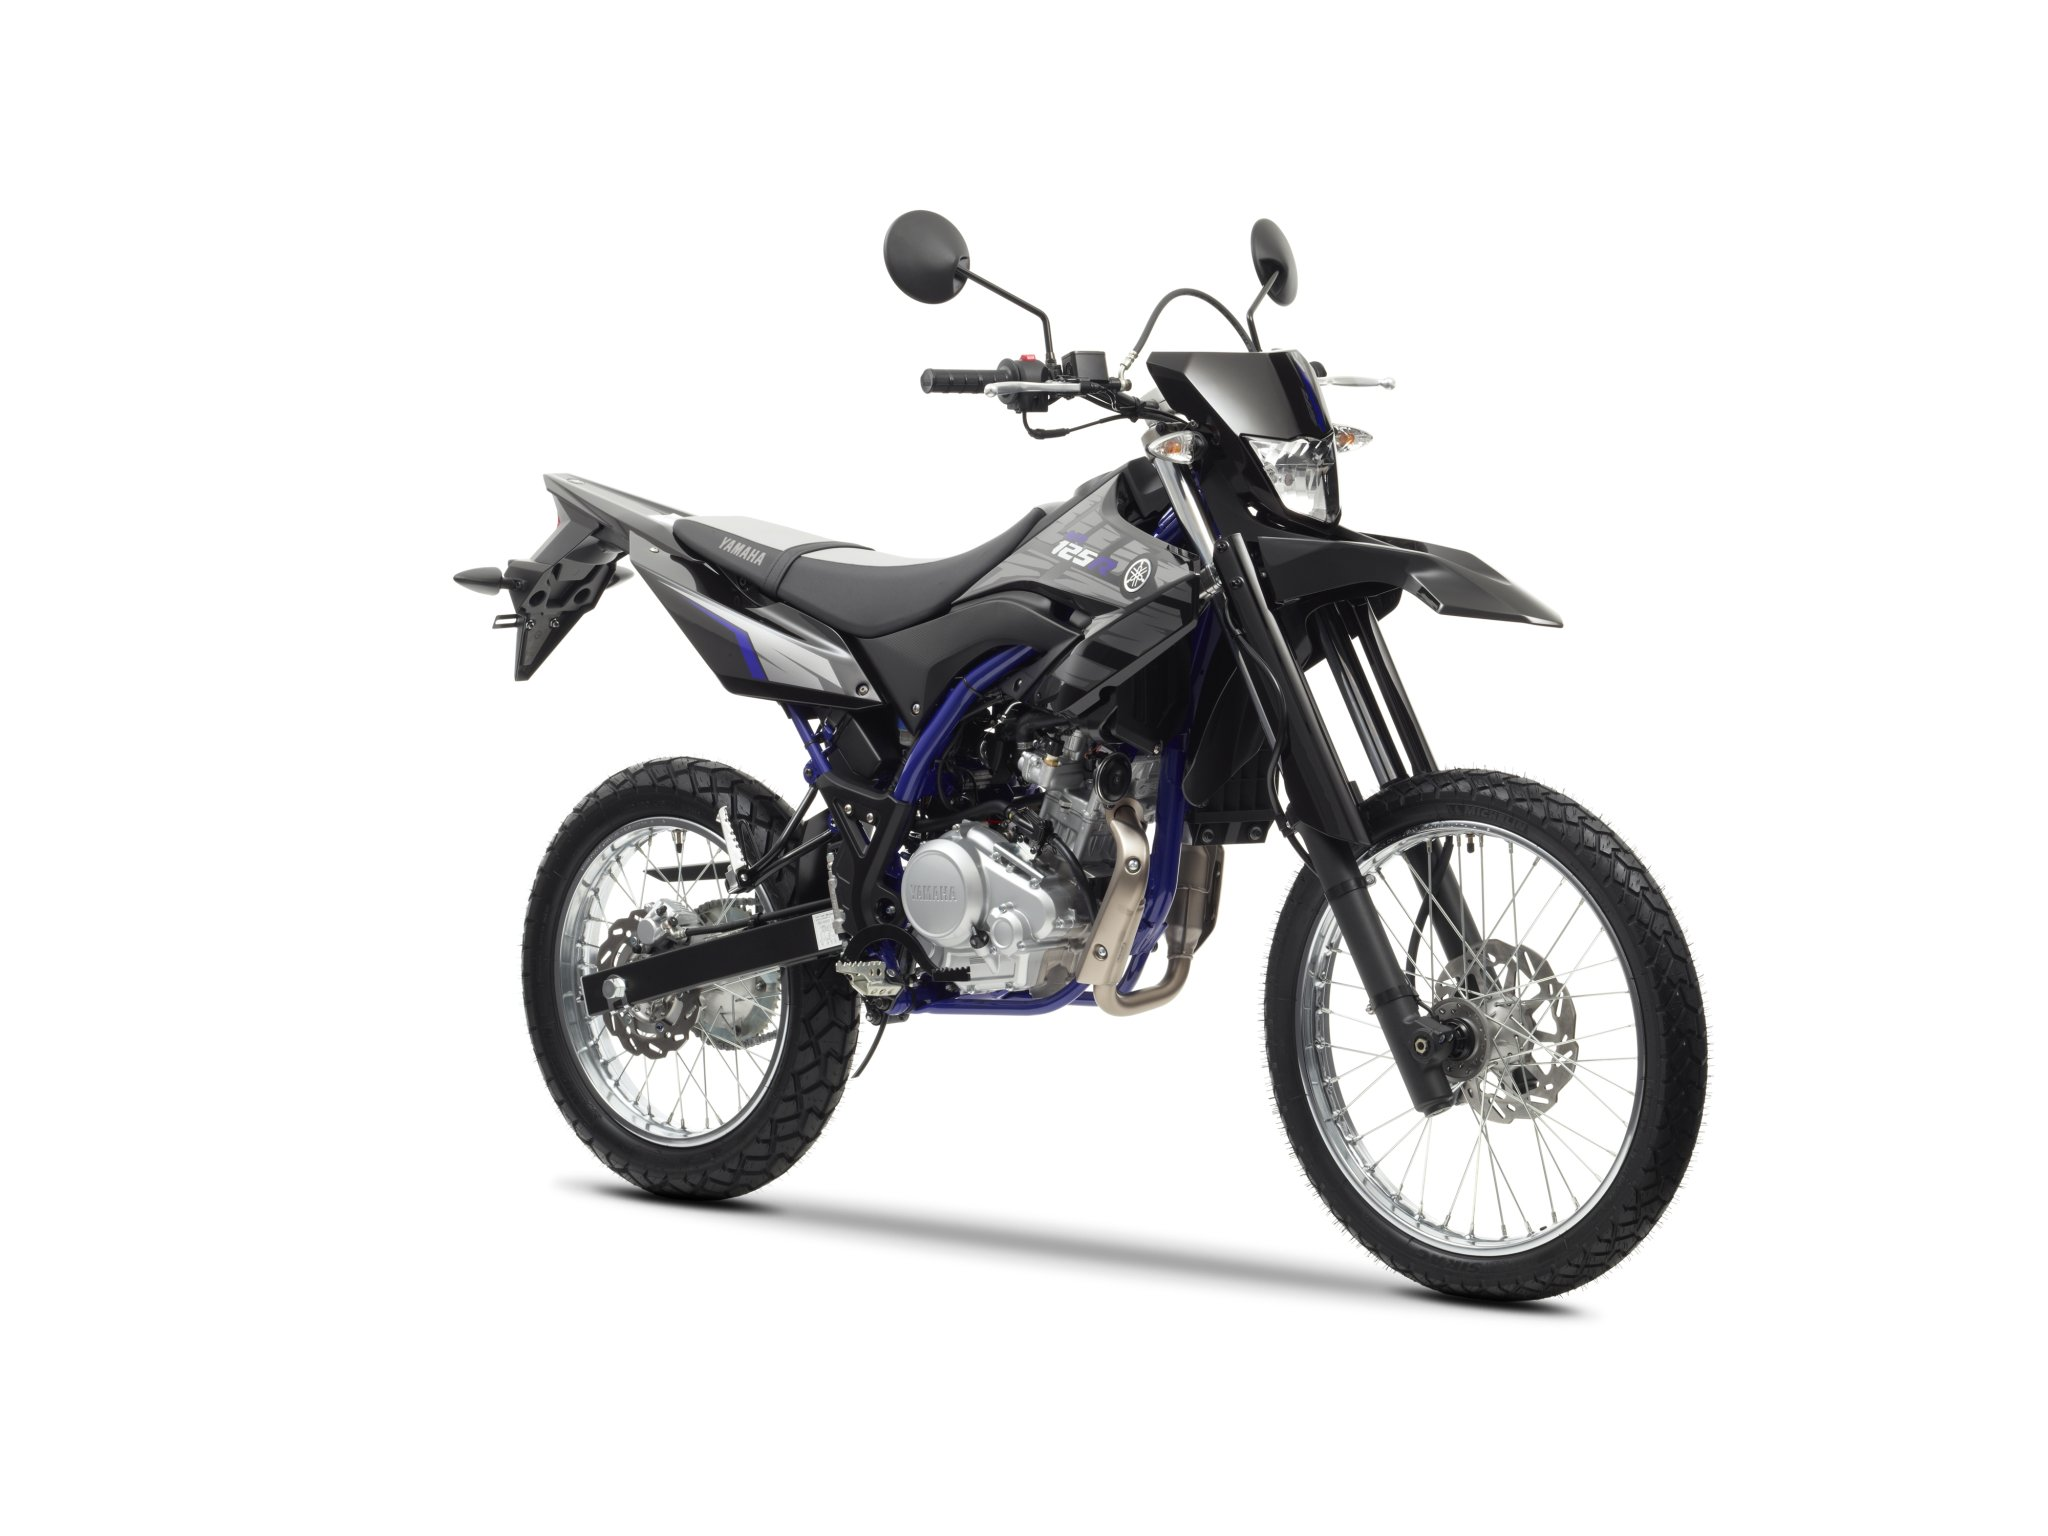 yamaha wr 125 r bilder und technische daten. Black Bedroom Furniture Sets. Home Design Ideas